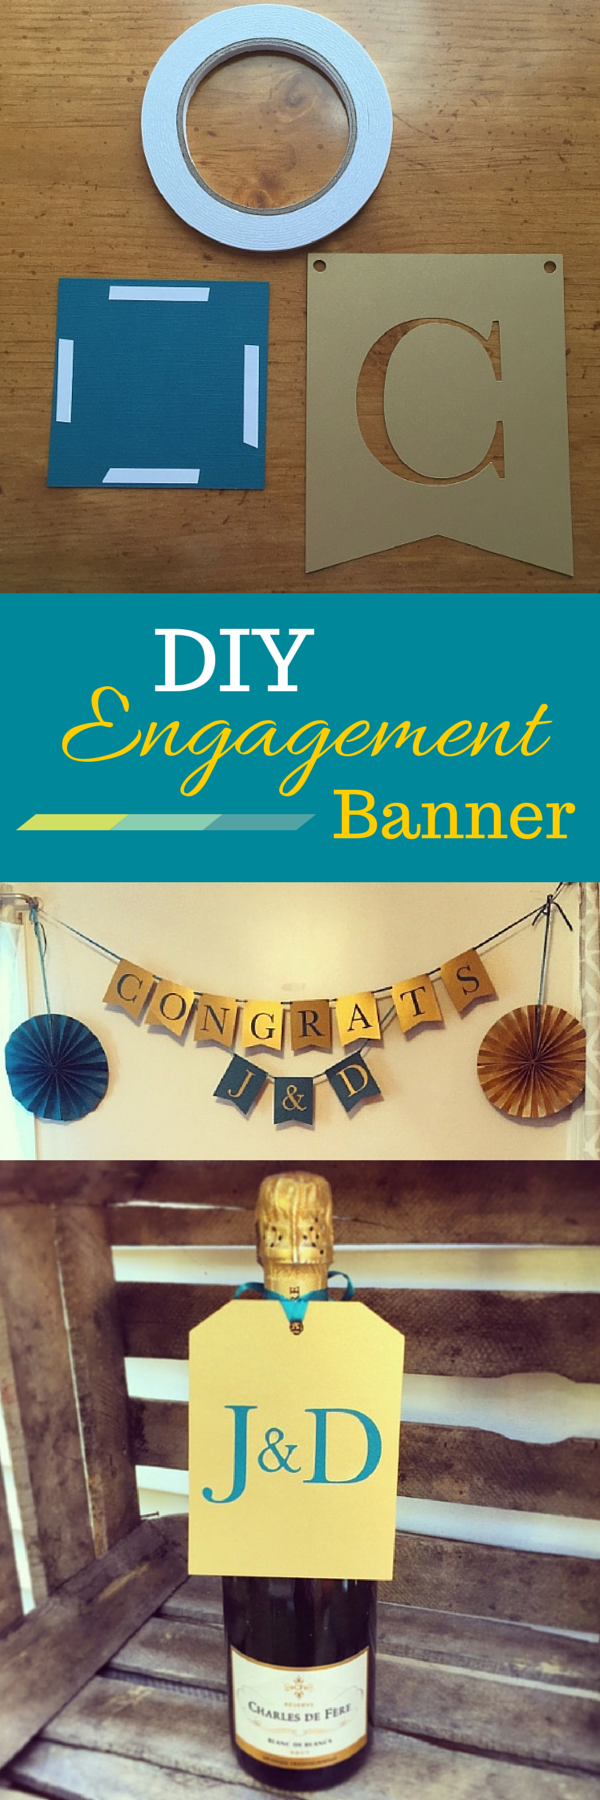 DIY Engagement Banner (1).png